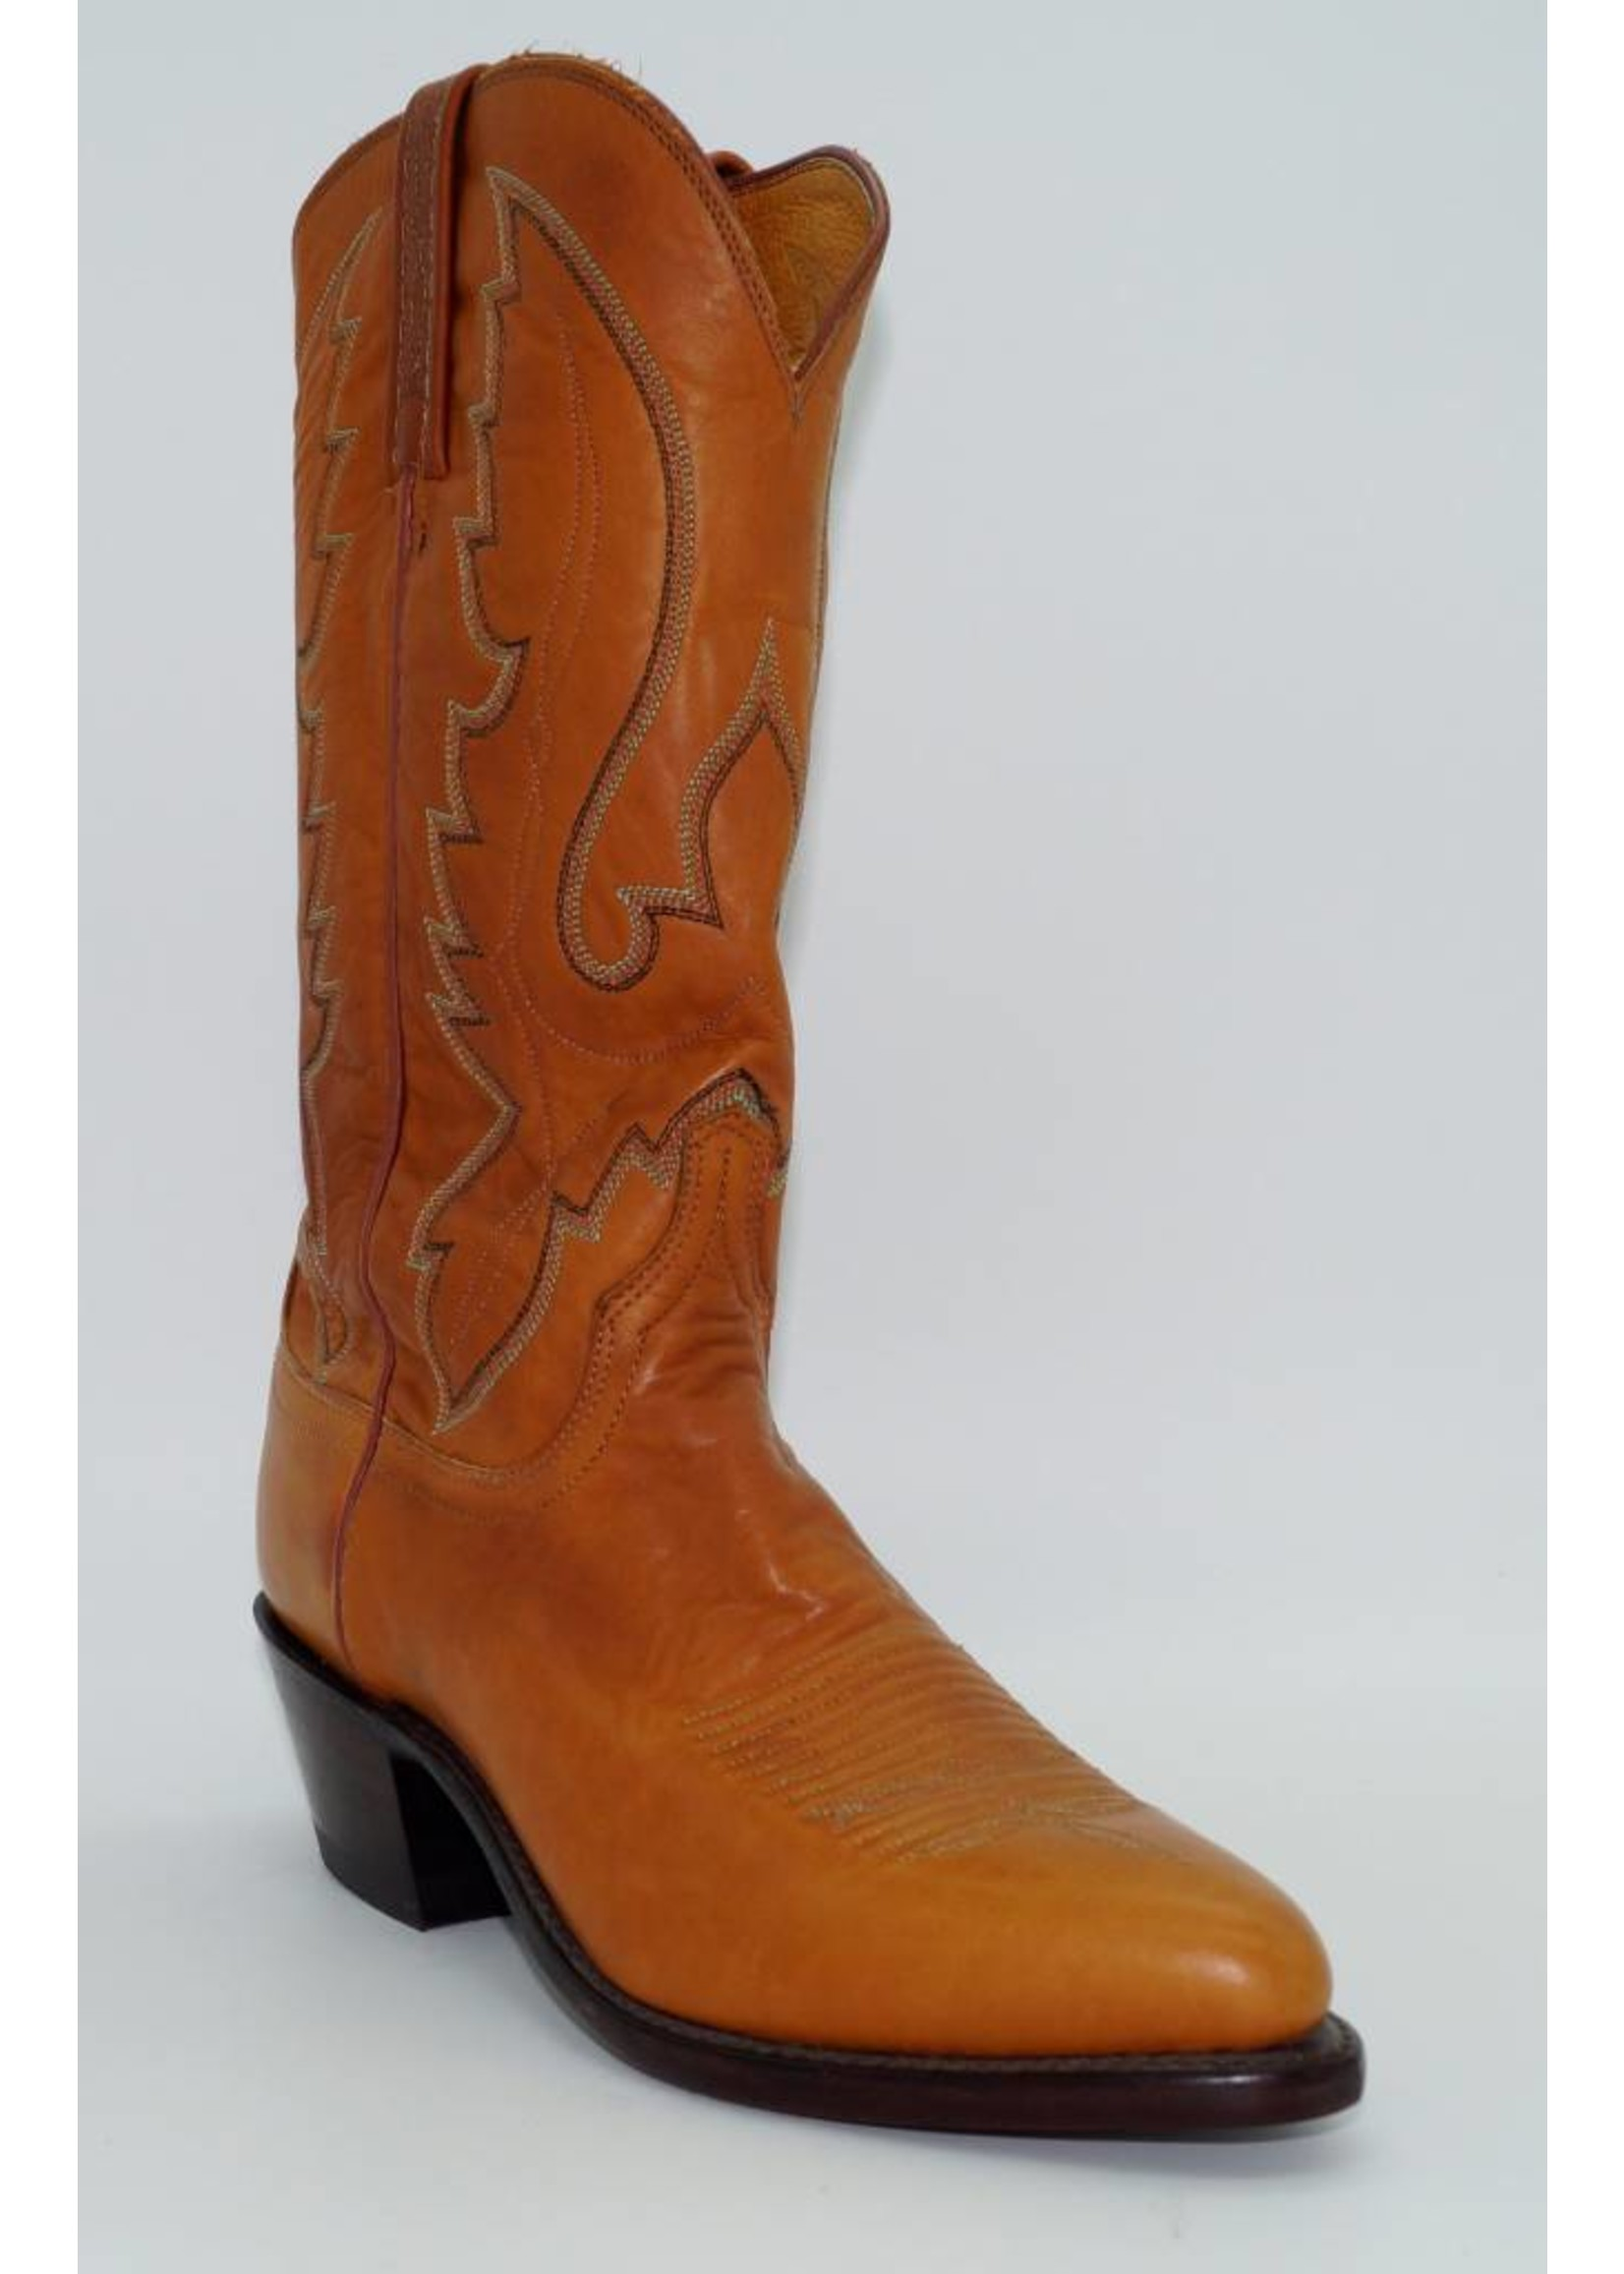 Lucchese Men's Cowboy Western Boots Tan Leather N1505-J4